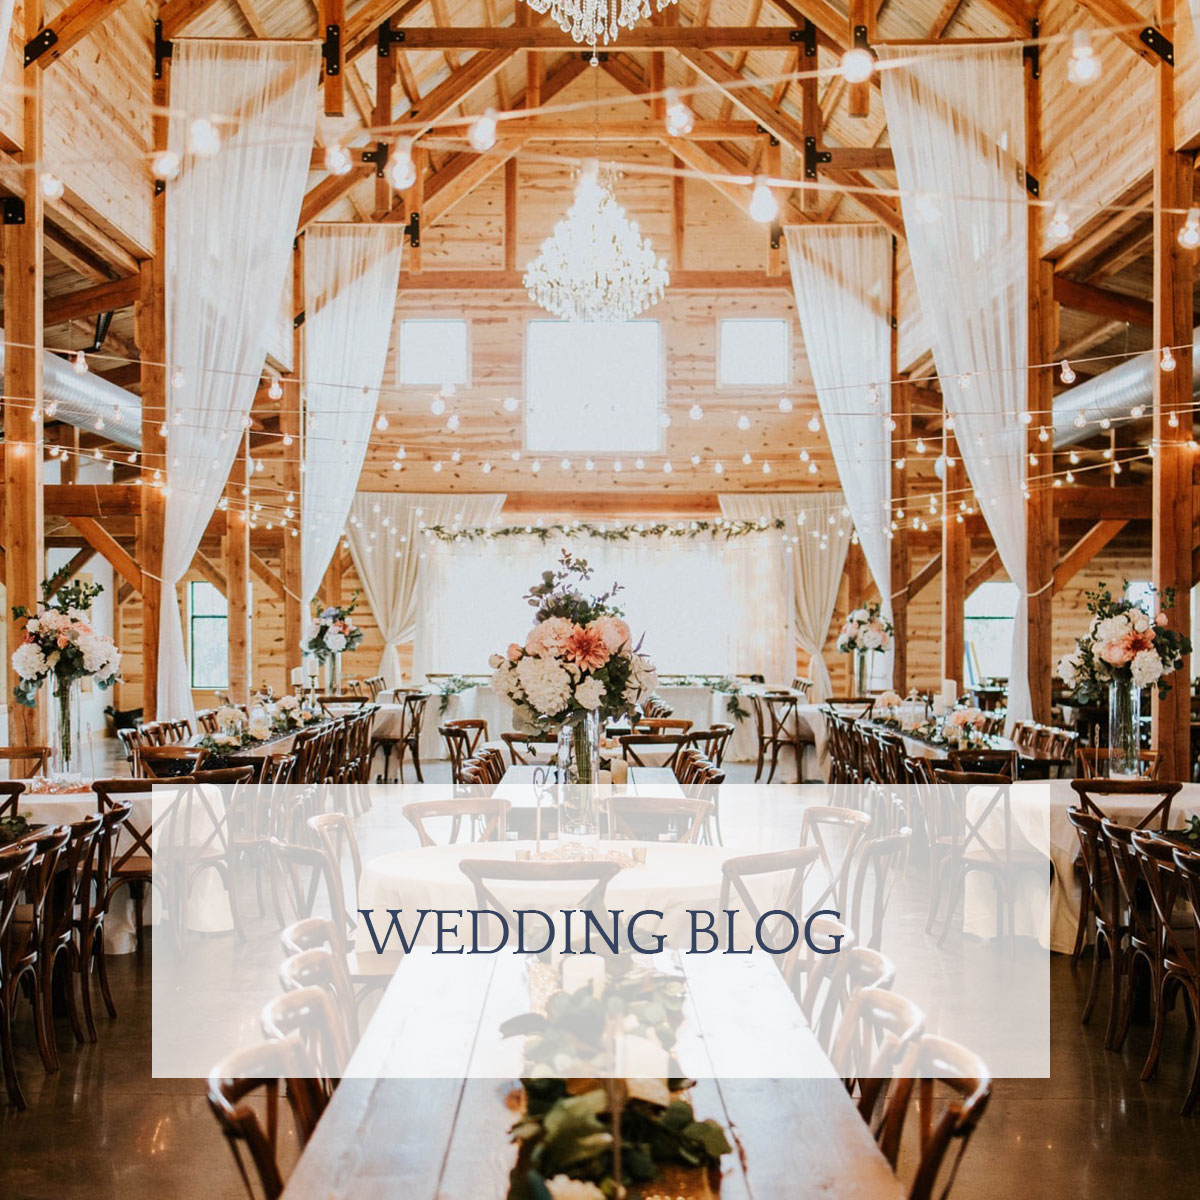 Wedding-Blog_Home2